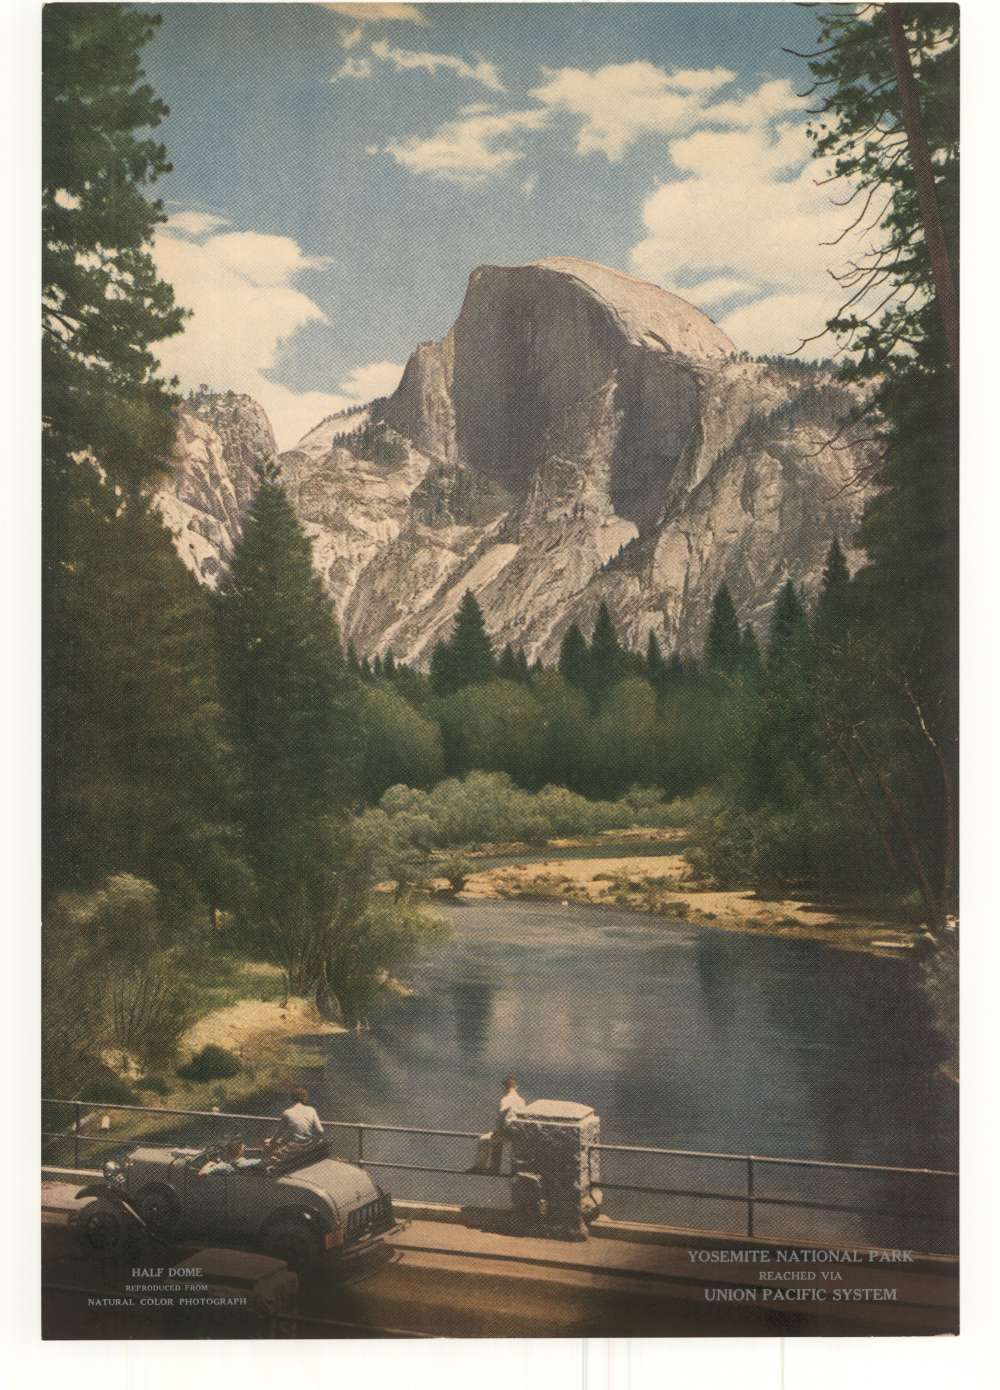 Promotional poster featuring the Half Dome rock formation at Yosemite National Park